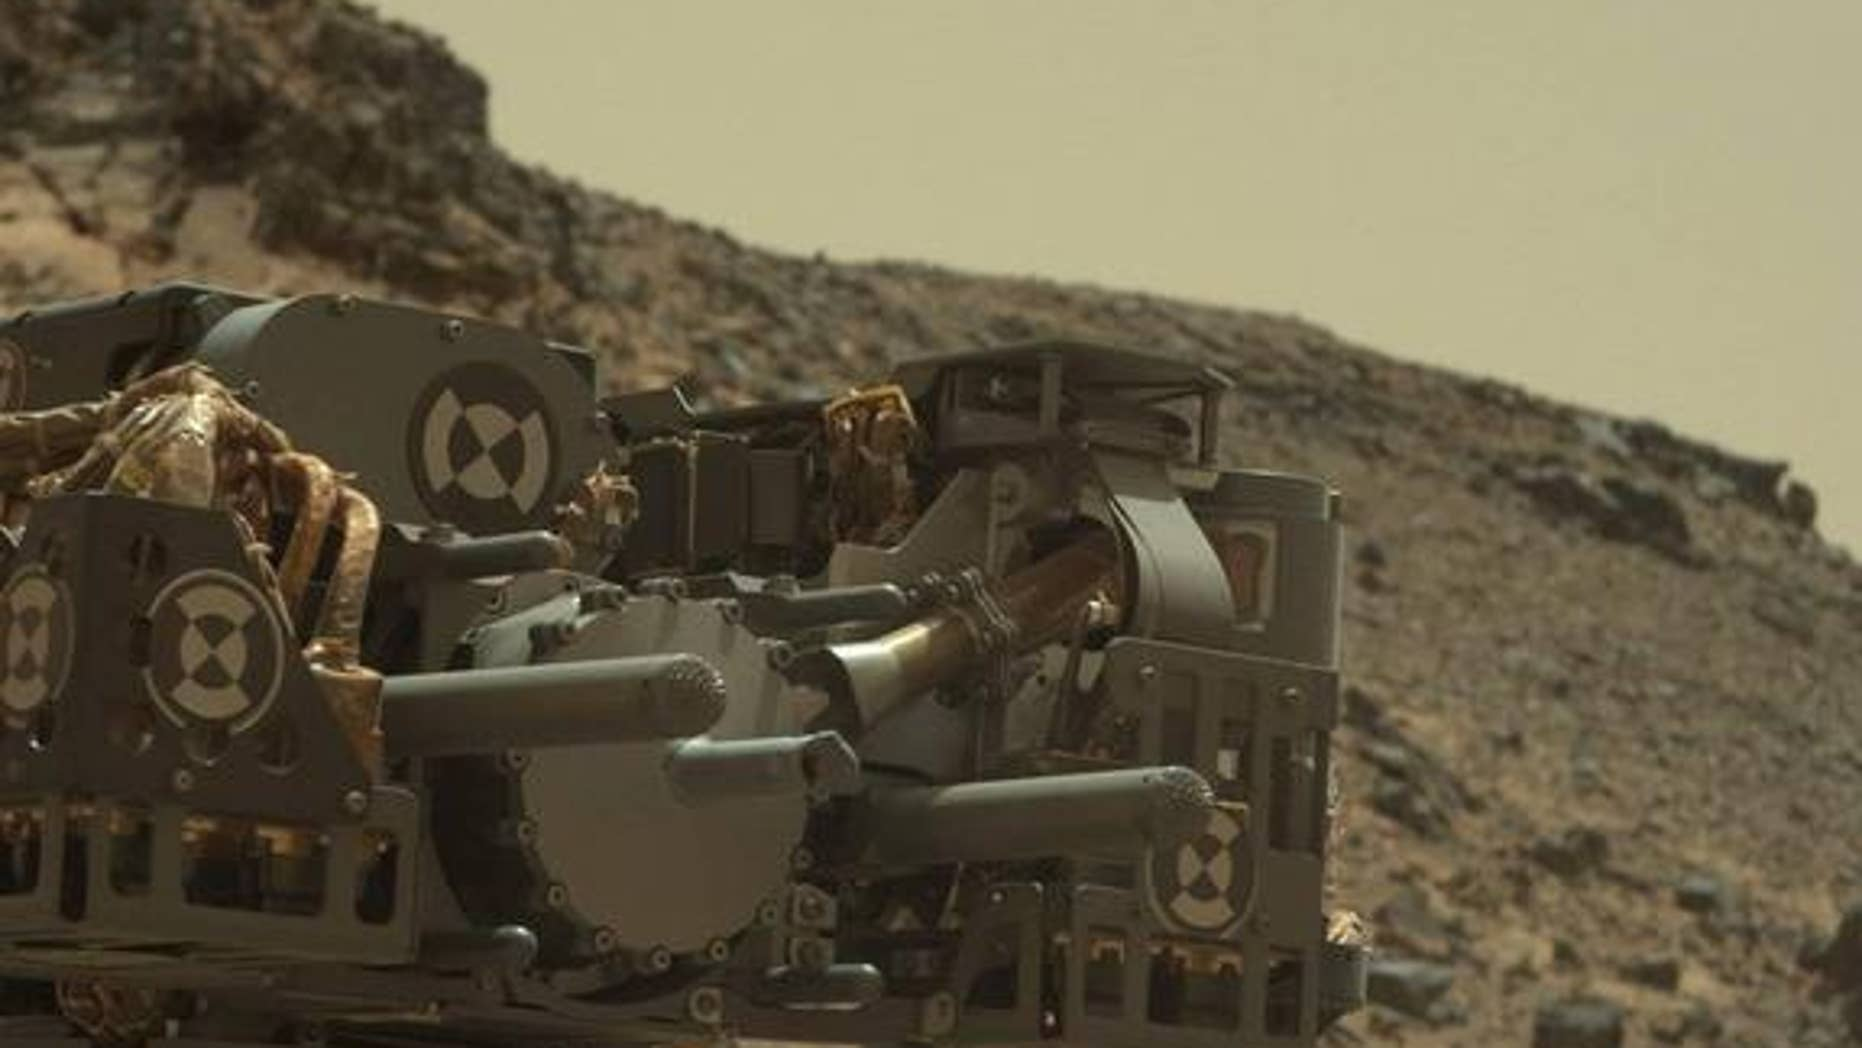 This raw-color image captured by the Mars rover Curiosity's Mastcam shows the robot's drill just after finishing a drilling operation at an outcrop called Telegraph Peak on Feb. 24, 2015.